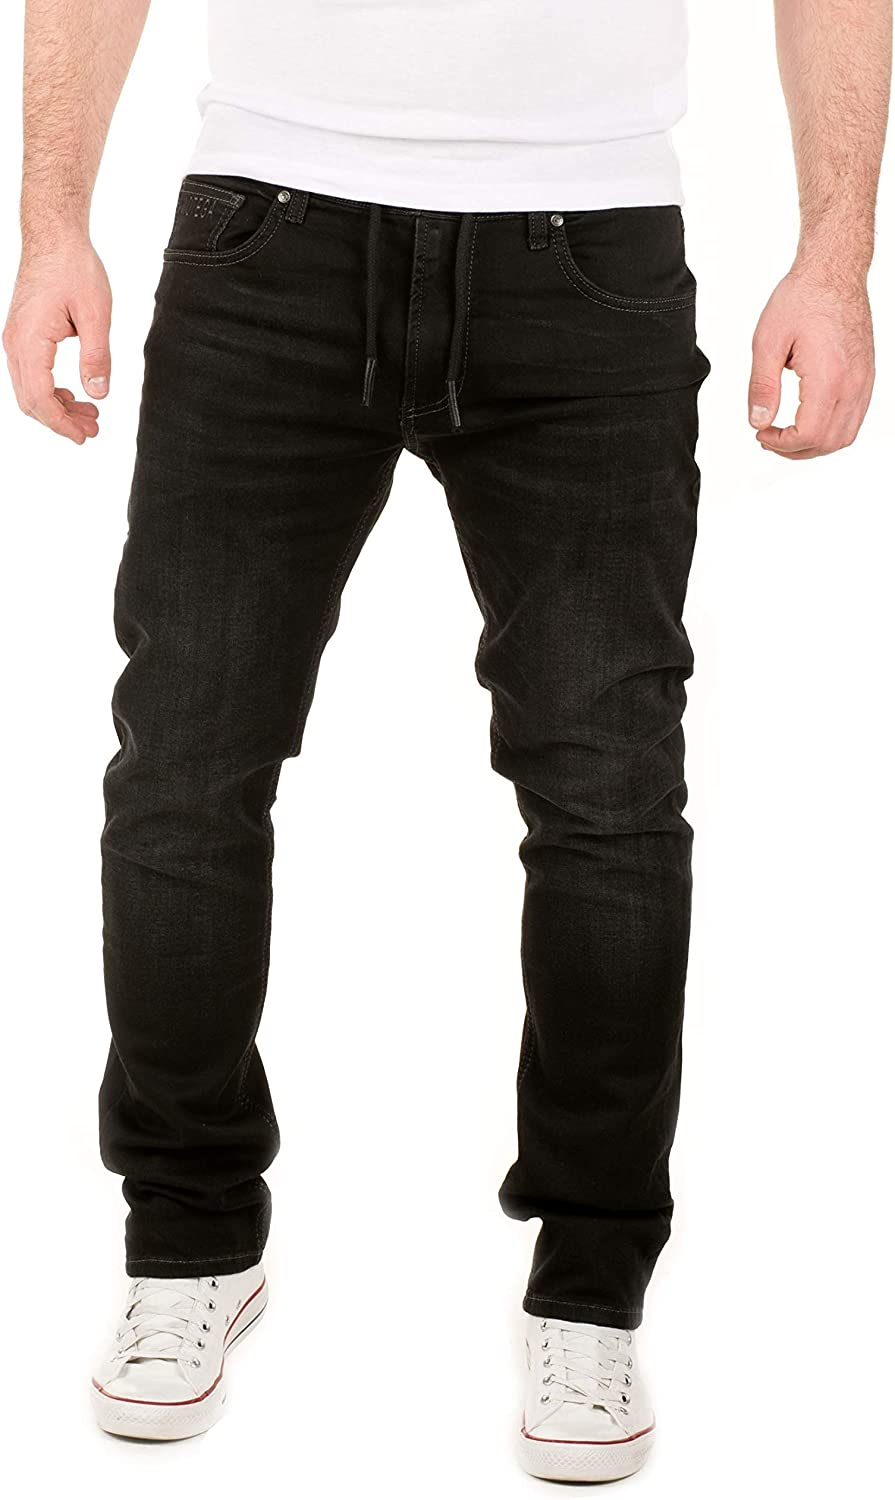 Straight Leg Mens Designer Cuffed Denim Skinny Joggers Jeans Slim Fit Trousers